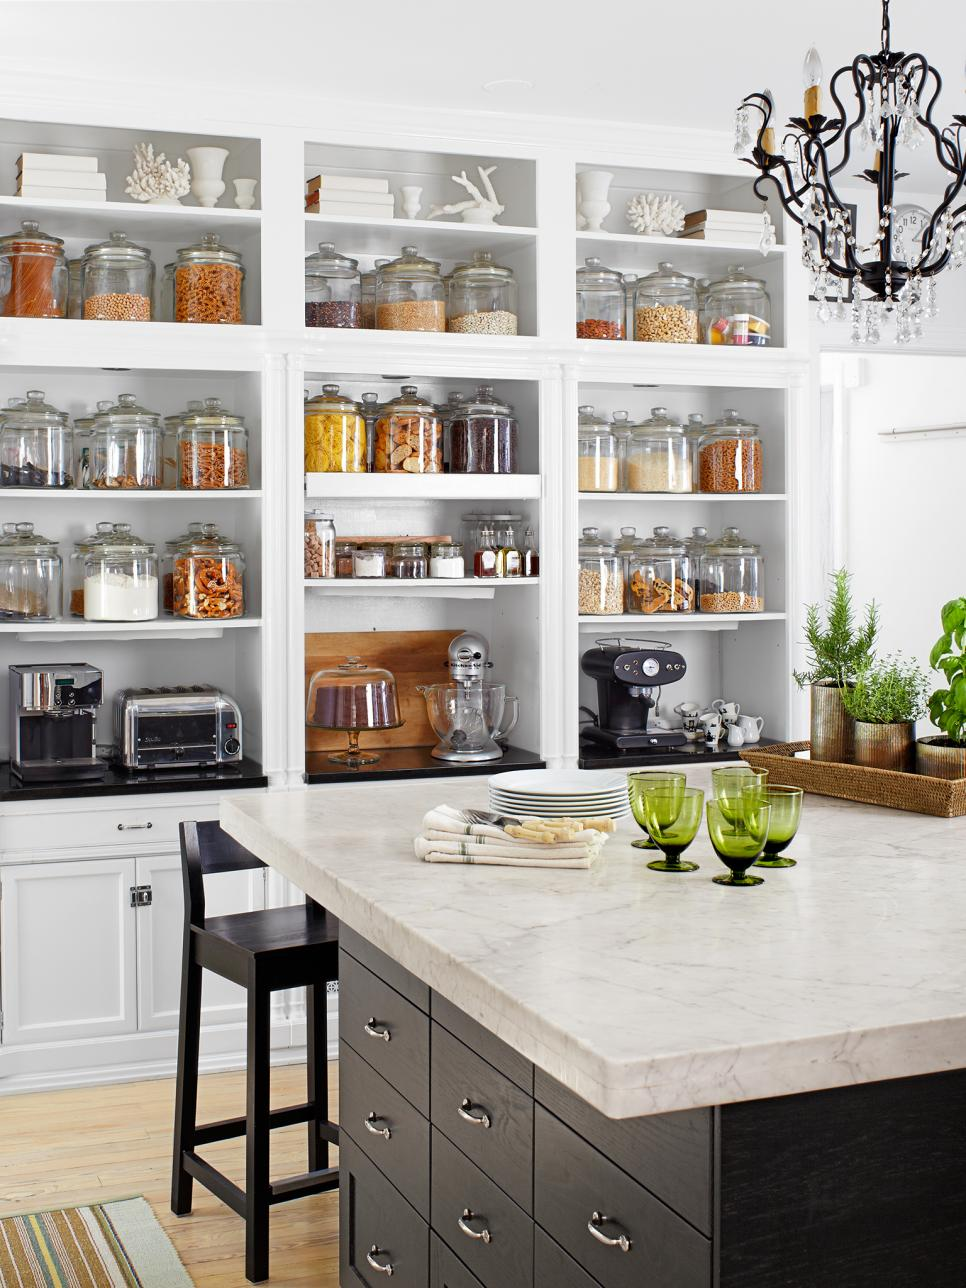 RX-HGMAG006_Kitchen-Chronicles-142-a_s3x4.jpg.rend.hgtvcom.966.1288